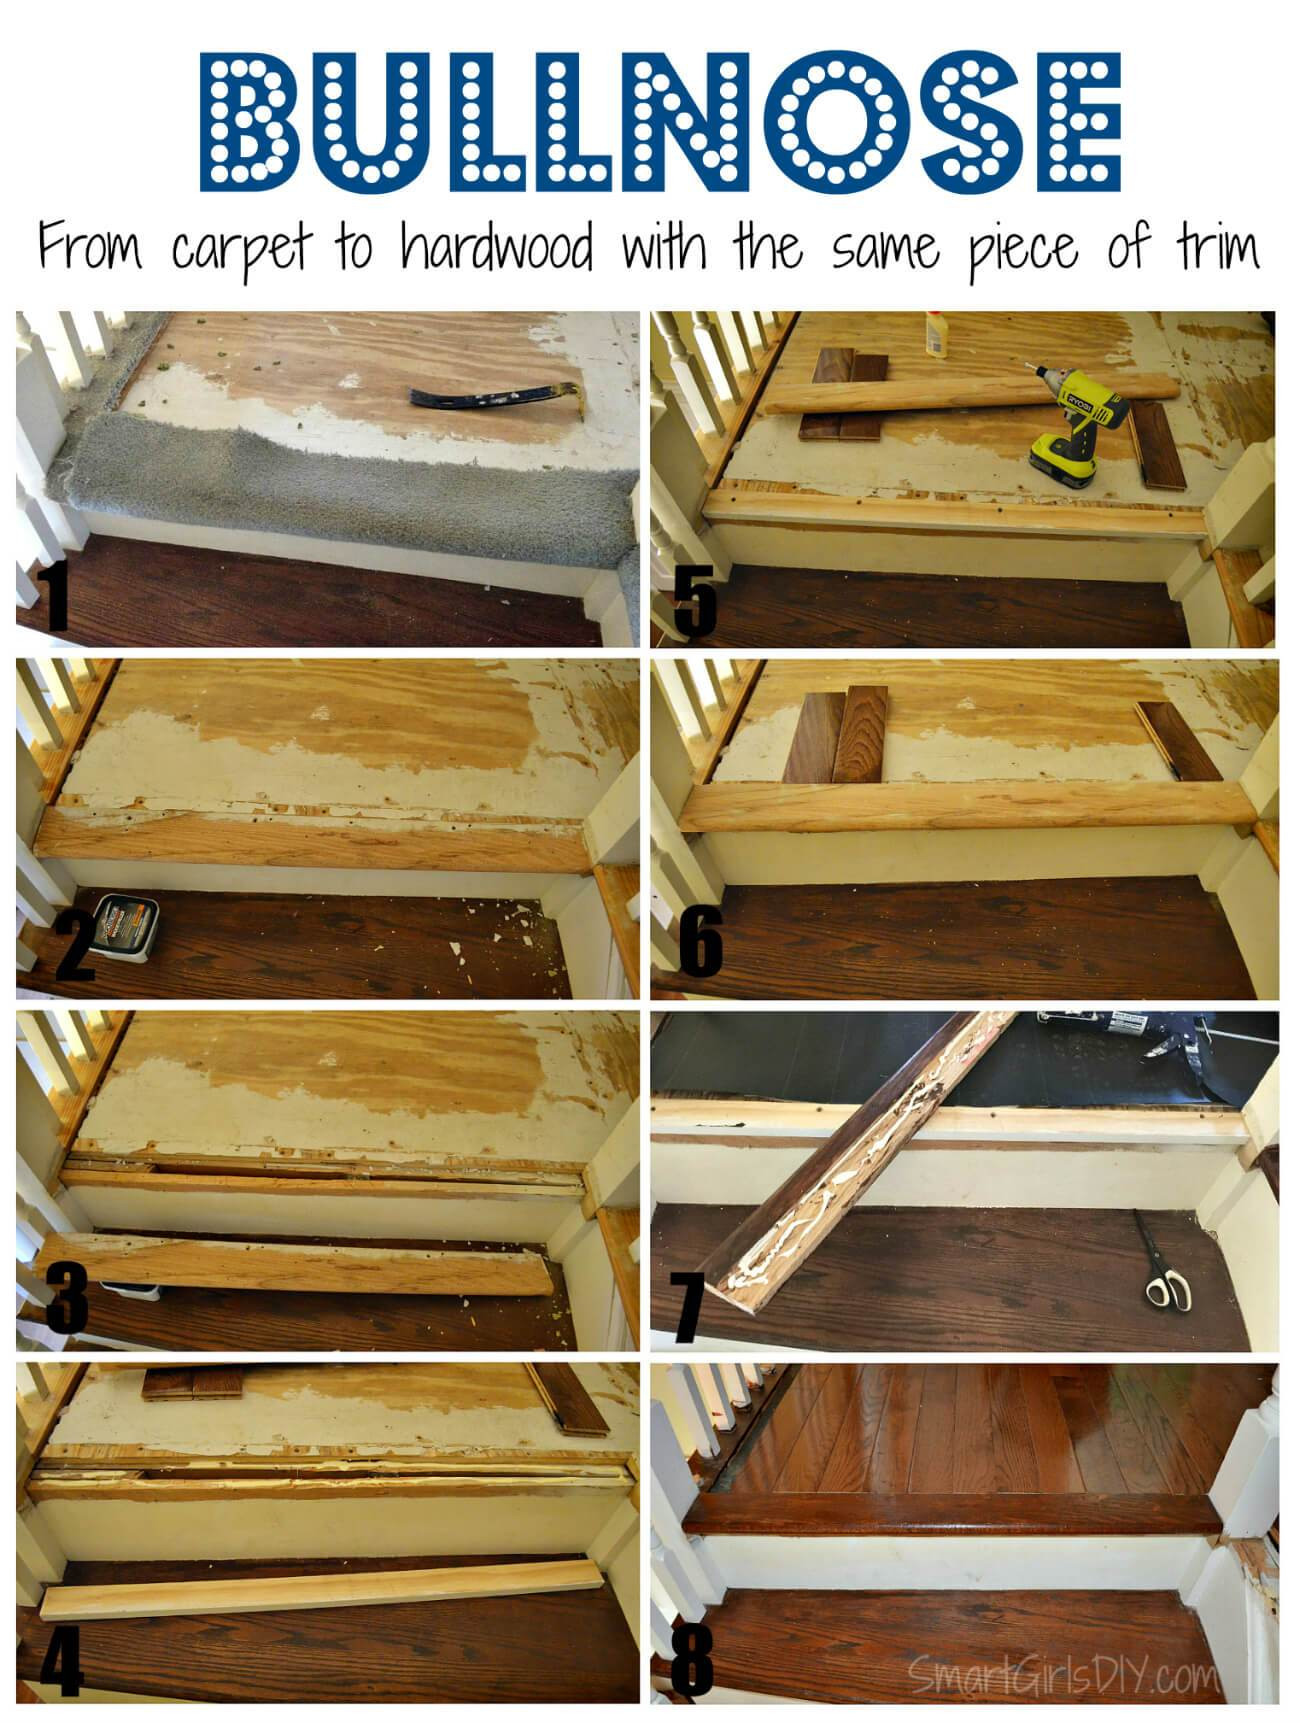 nail down hardwood floor installation cost of upstairs hallway 1 installing hardwood floors in bullnose from carpet to hardwood with the same piece of trim